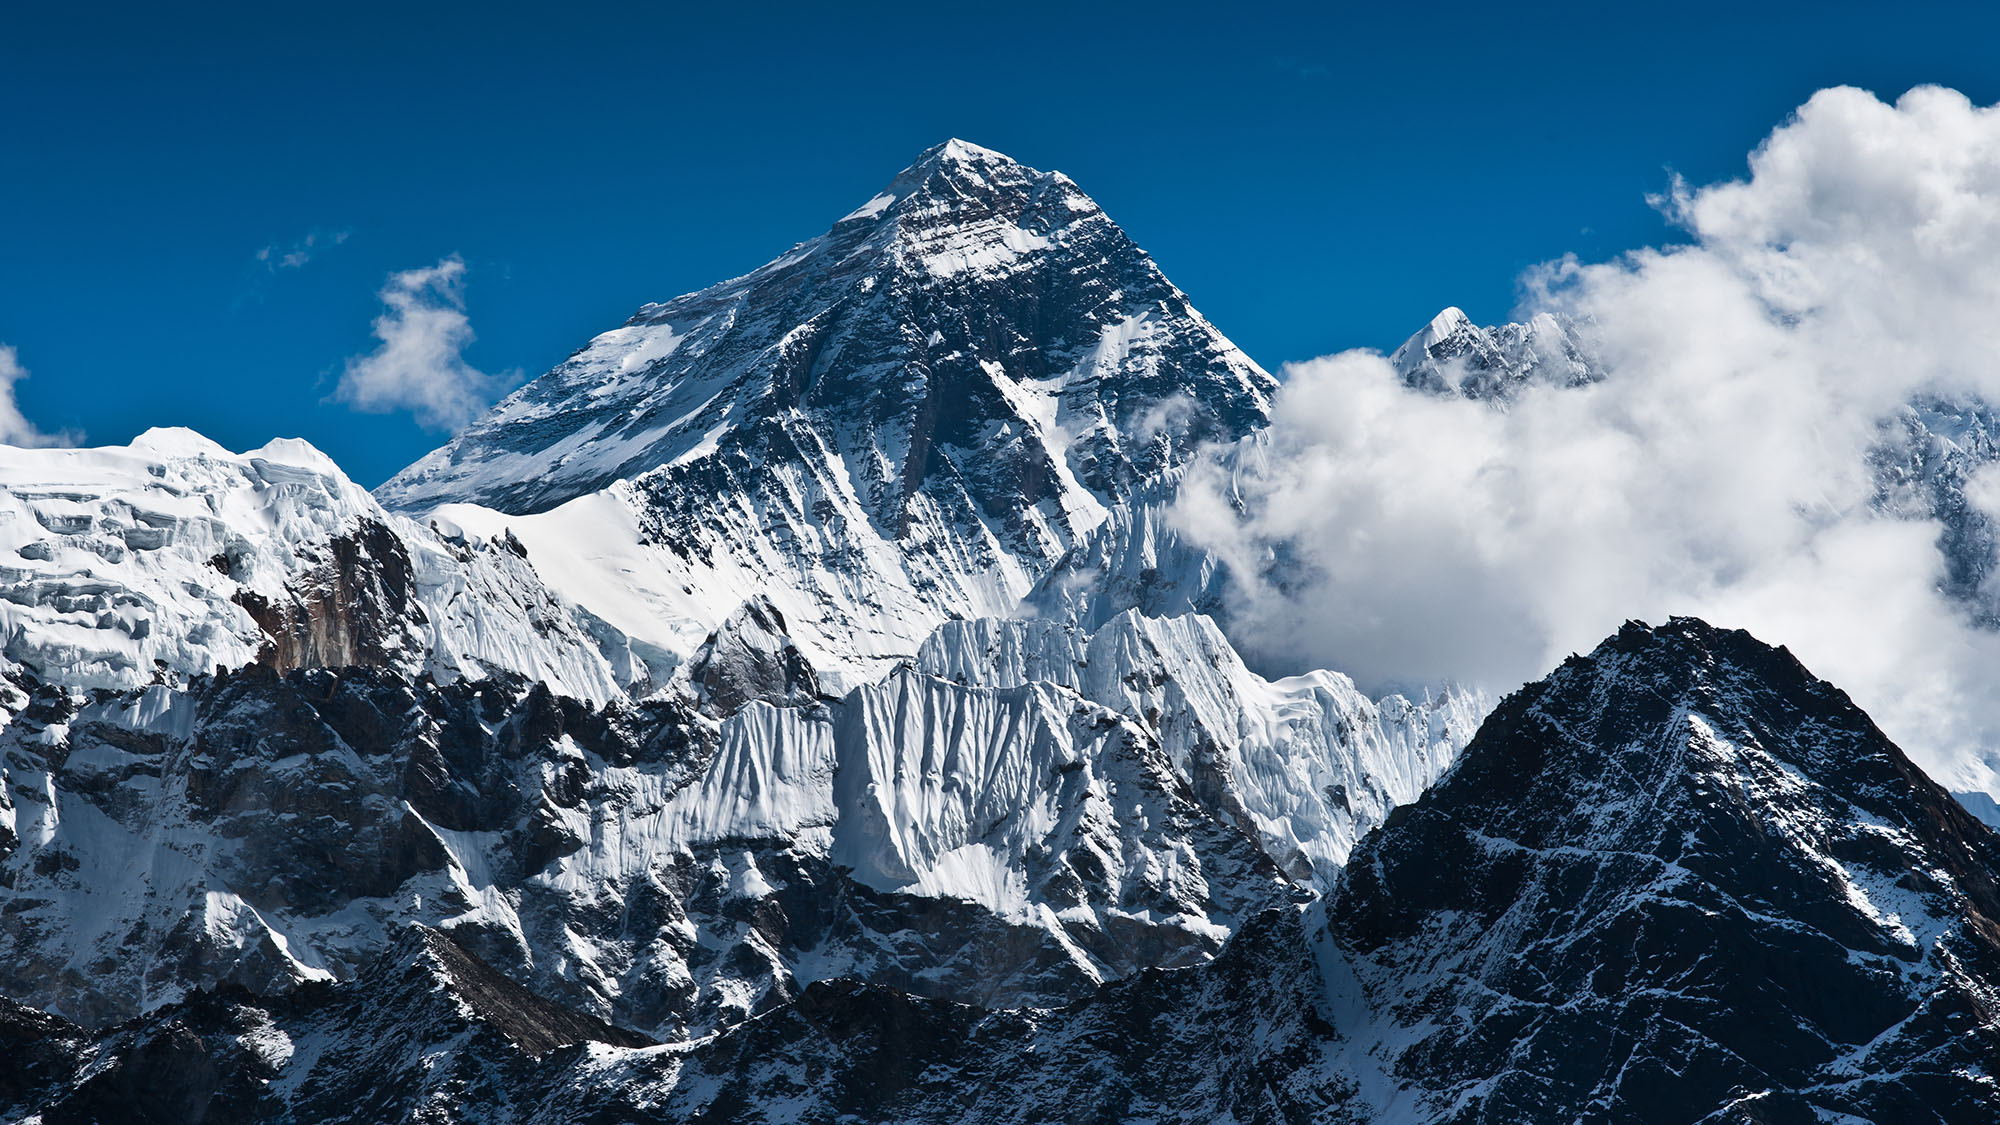 Mount Everest has shifted since Nepal earthquake